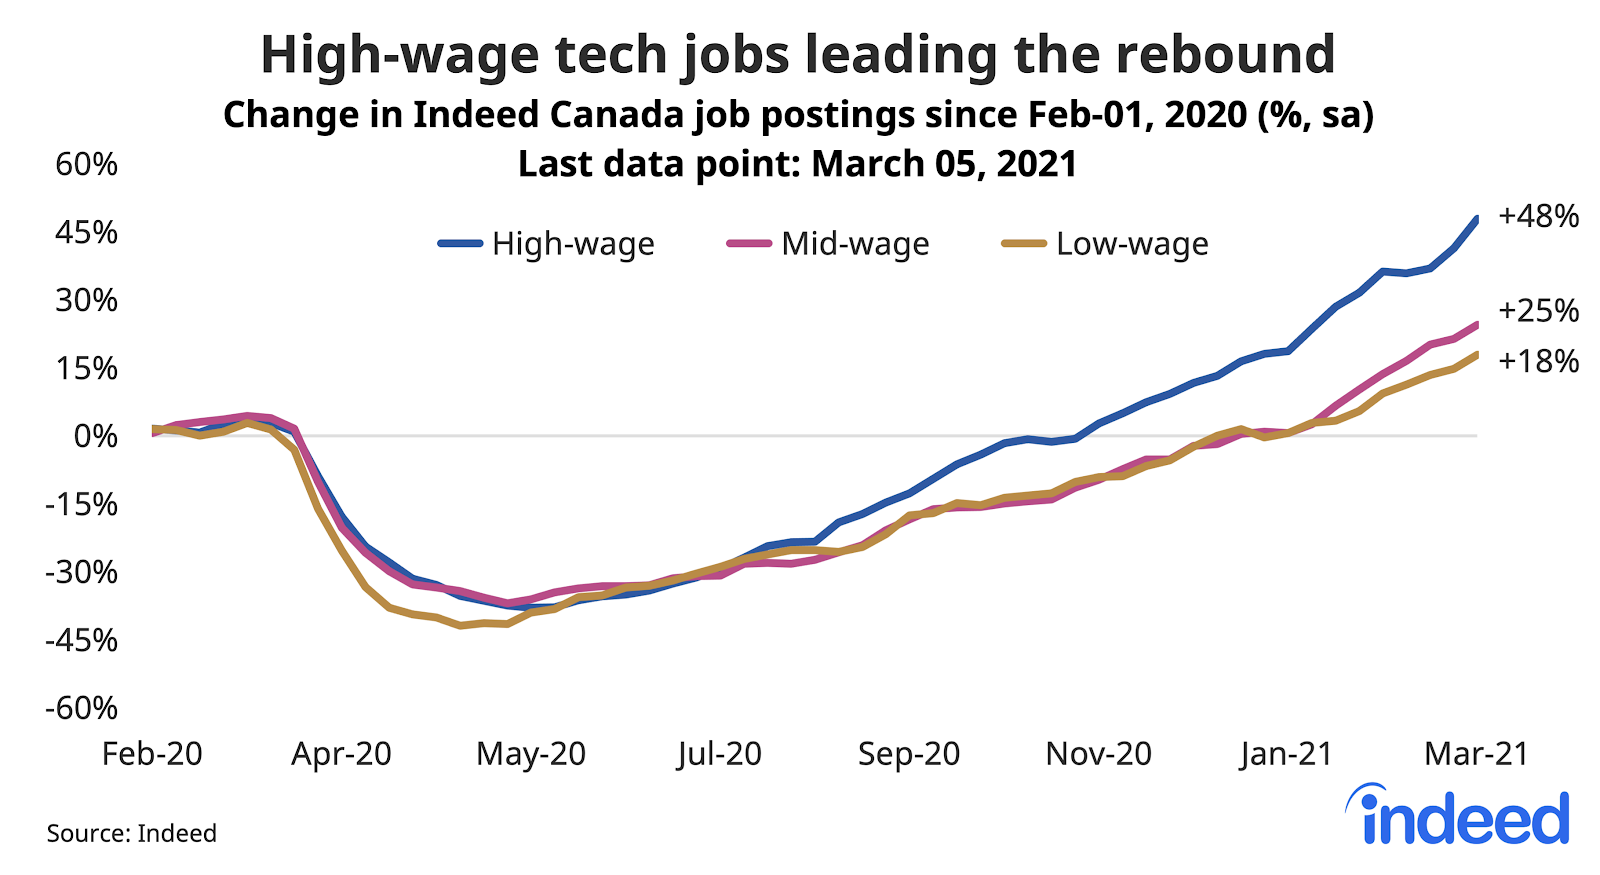 Line graph showing high-wage tech jobs leading the rebound